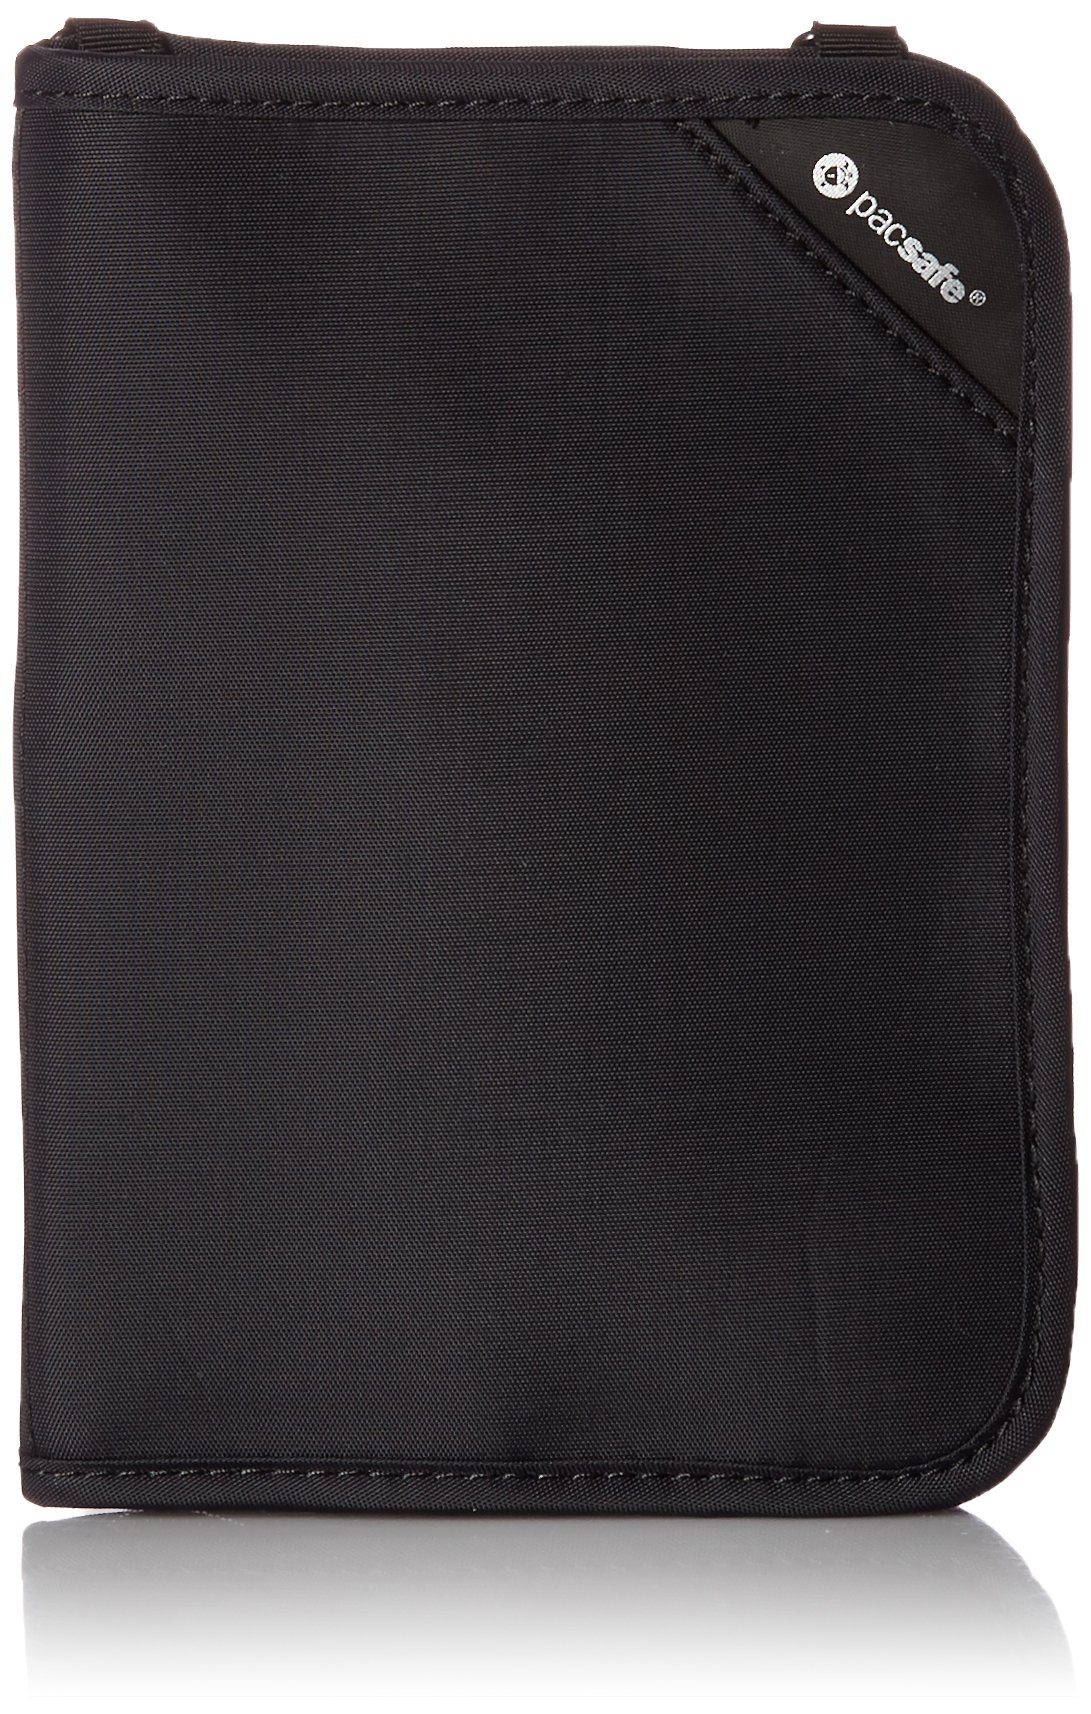 Pacsafe Rfidsafe V150 Anti-Theft RFID Blocking Compact Passport Wallet, Black by Pacsafe